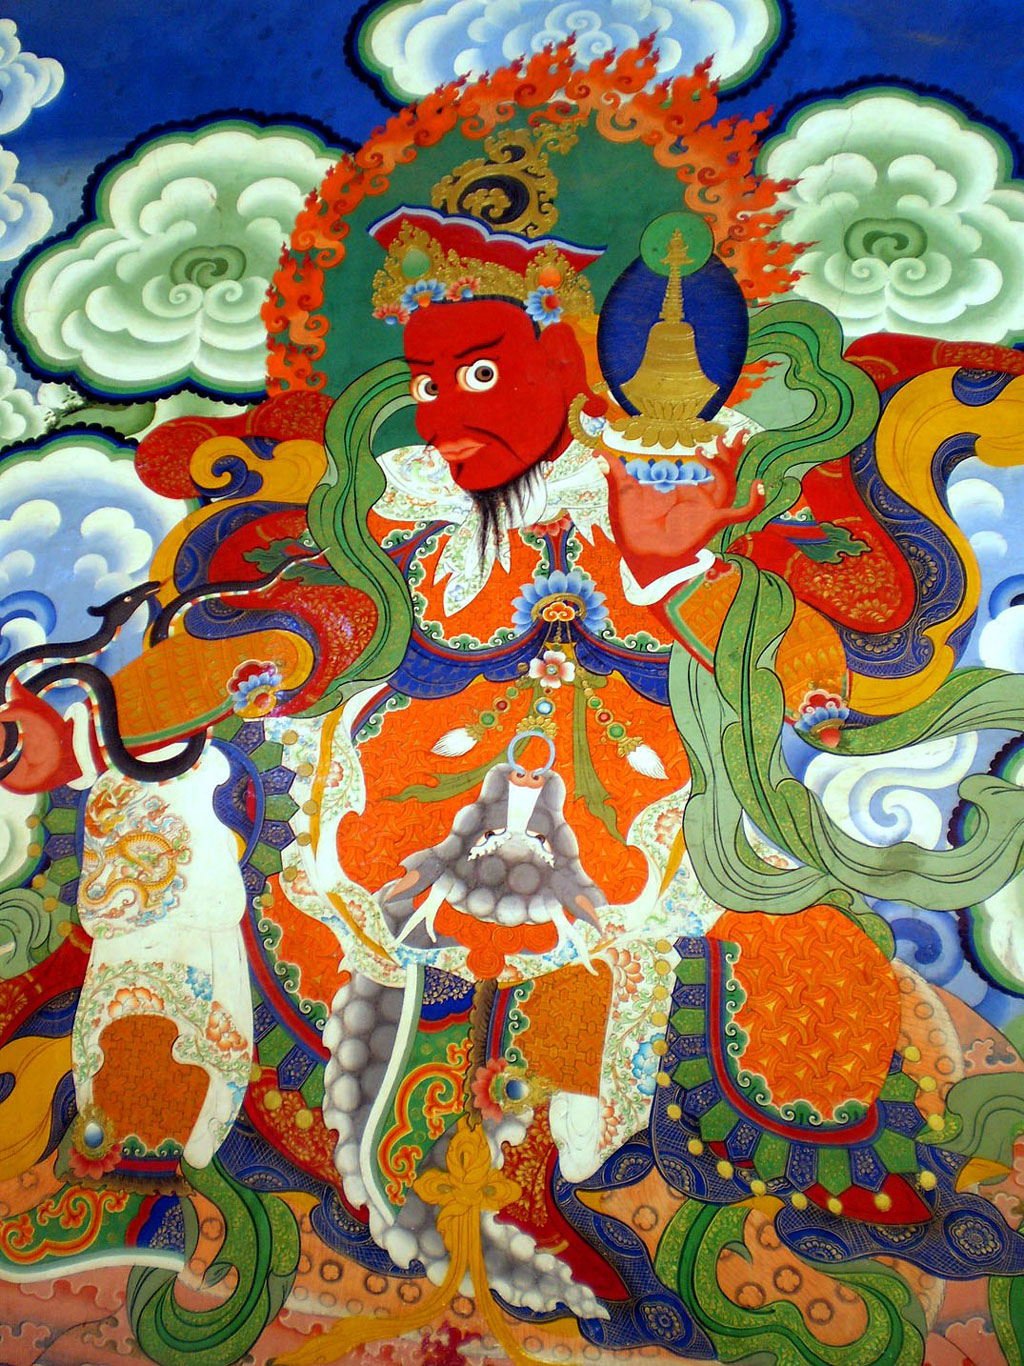 Mural at Hemis Monastery Photo credit: Rashmi Prakash